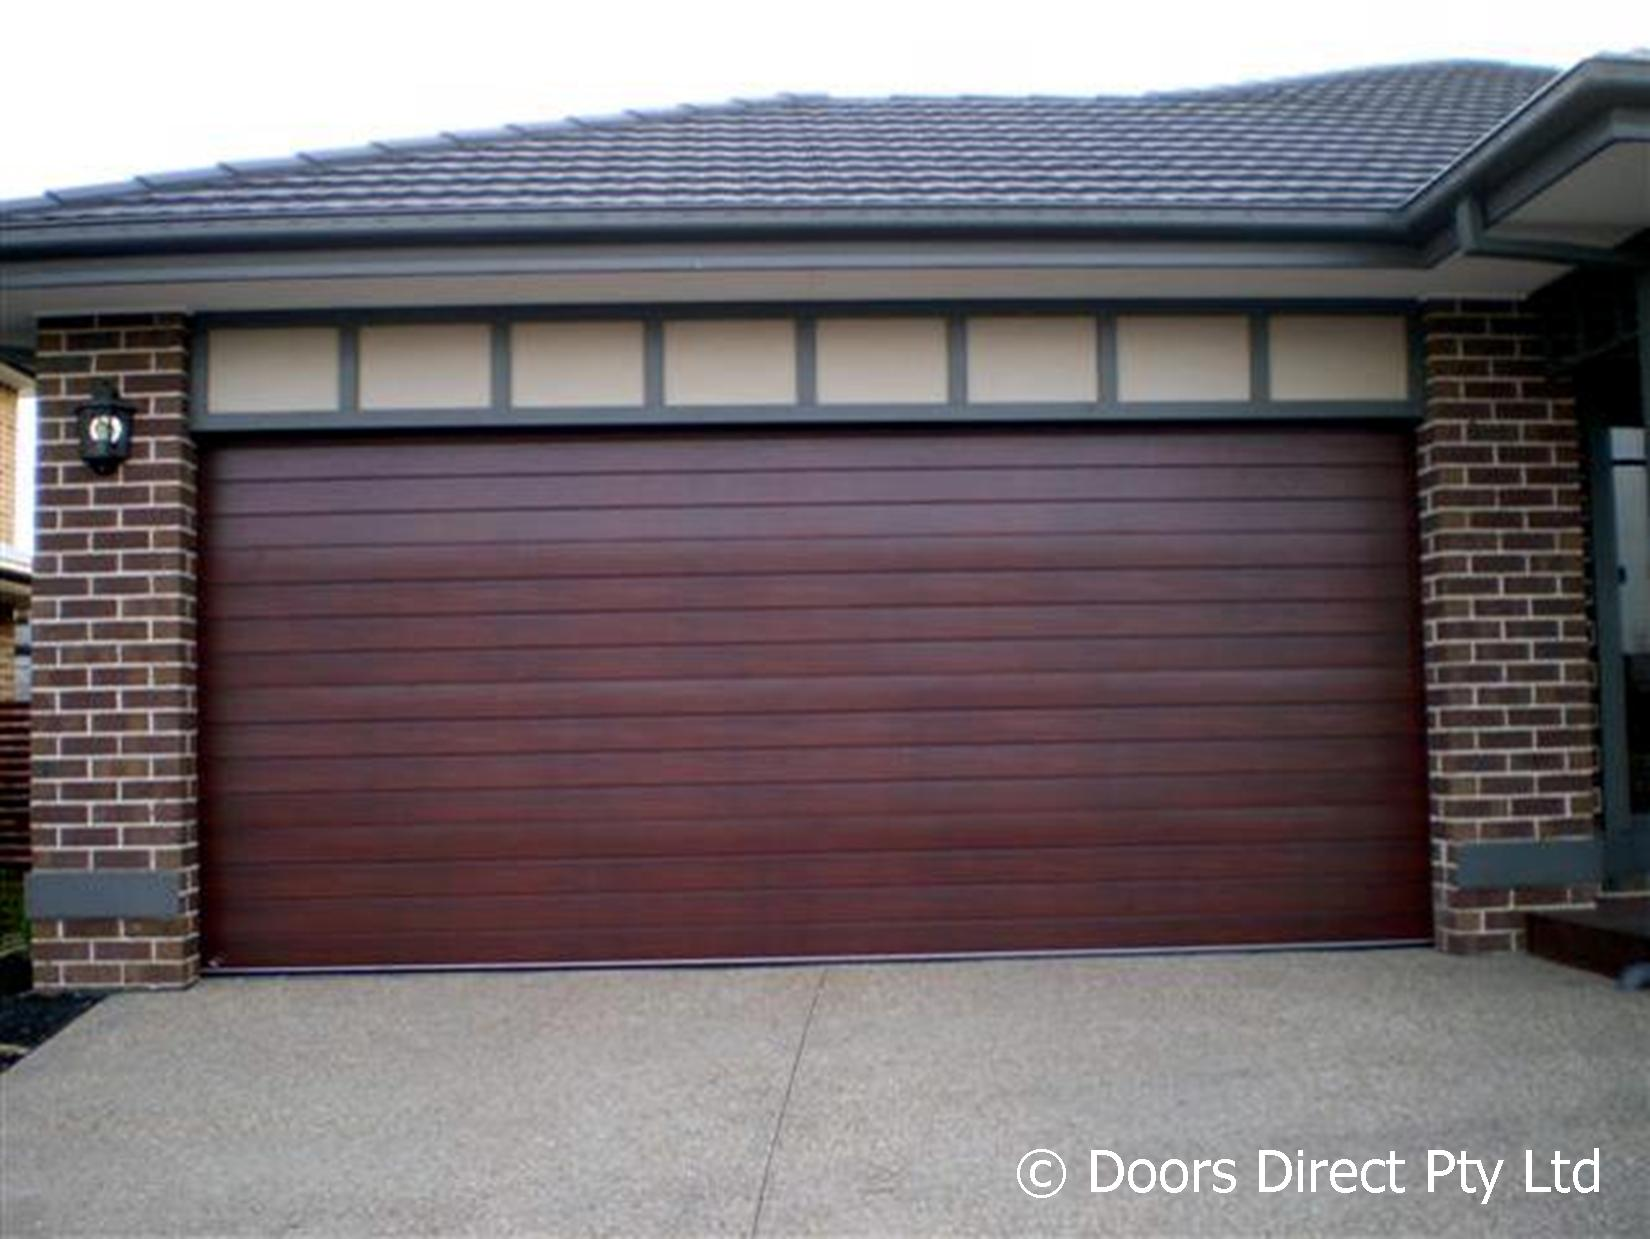 1239 #525E79 GALLERY > Sectional Doors – Timber Look image Overhead Doors Direct 38431650